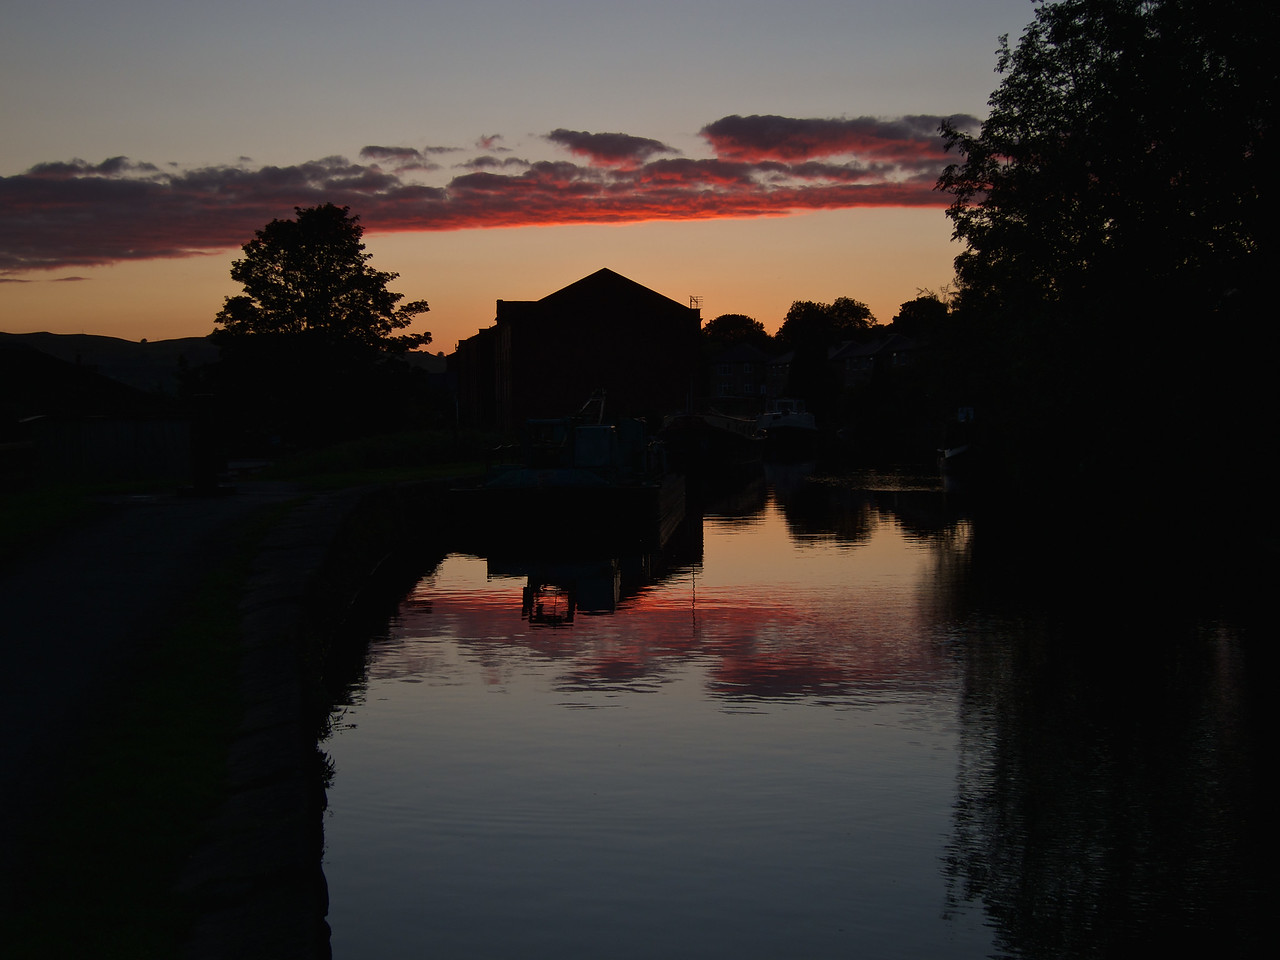 Sunset over the canal at Riddlesden